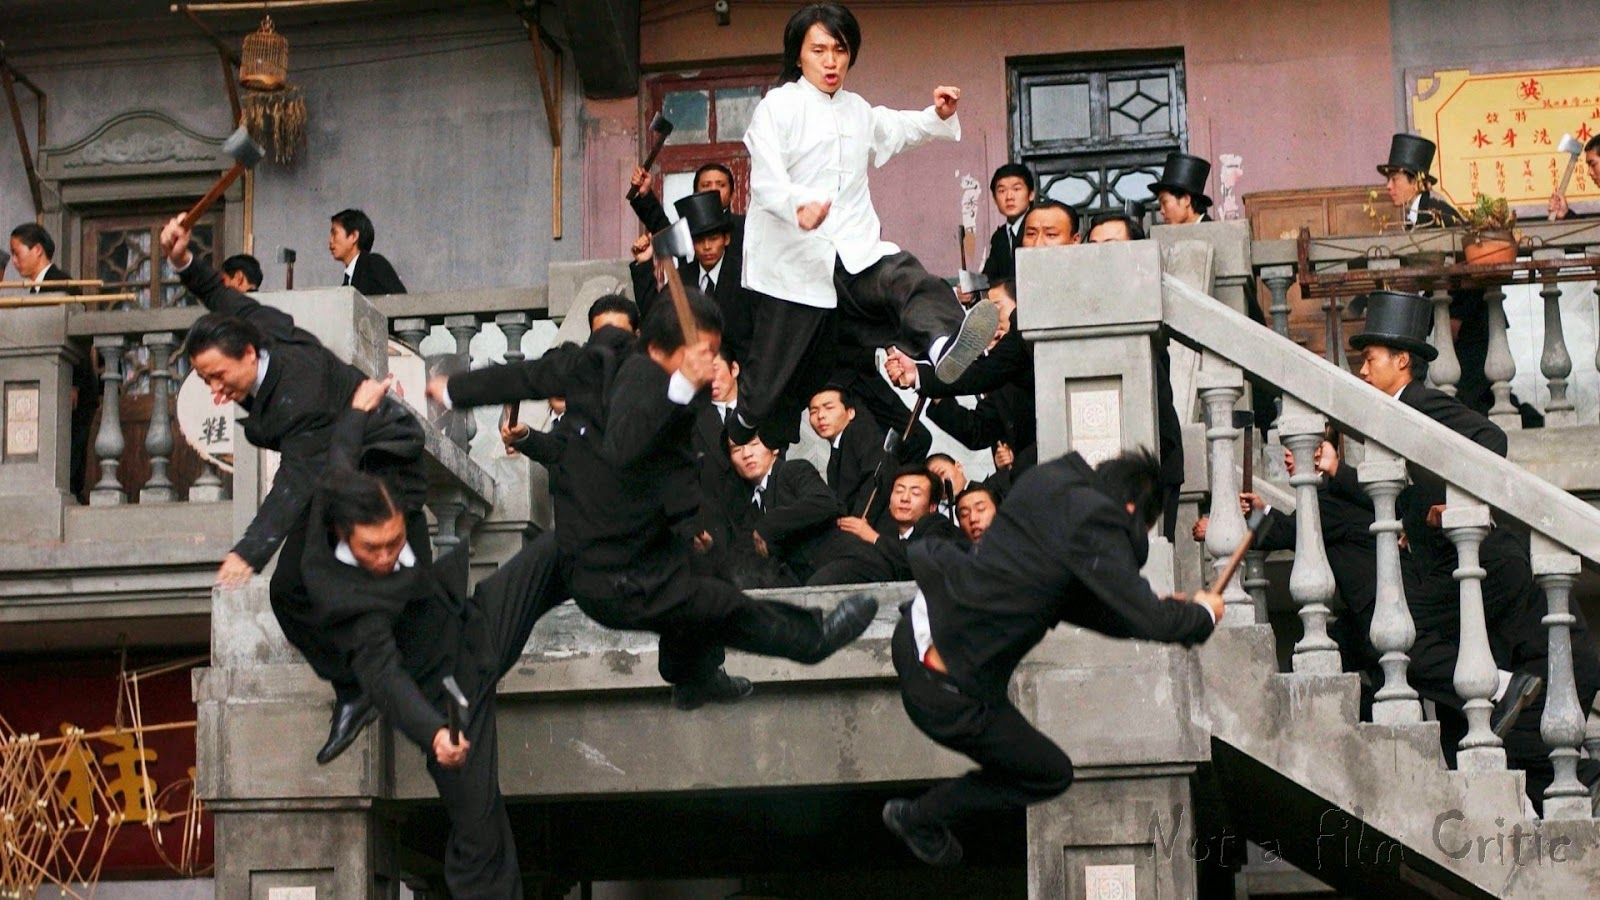 Stephen Chow in the midst of one of the sensational fight sequences in Kung Fu Hustle (2004)